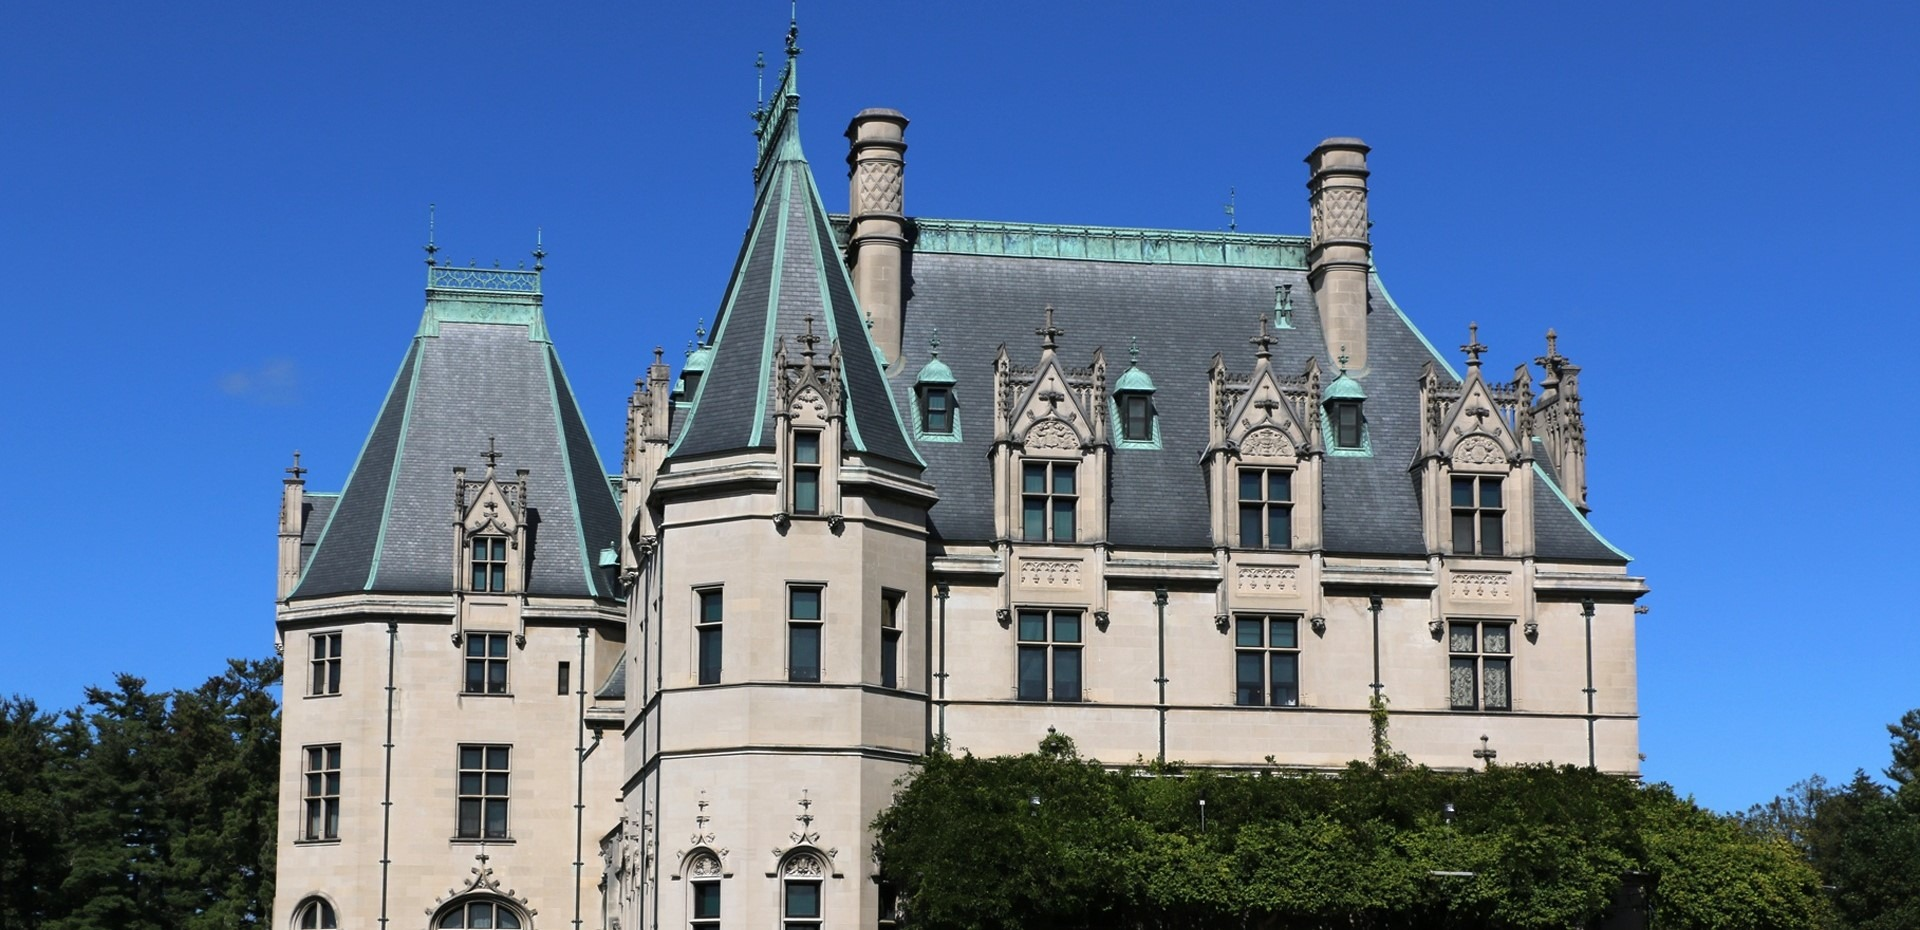 The Biltmore House in Asheville, North Carolina - GoodwillCarDonation.org